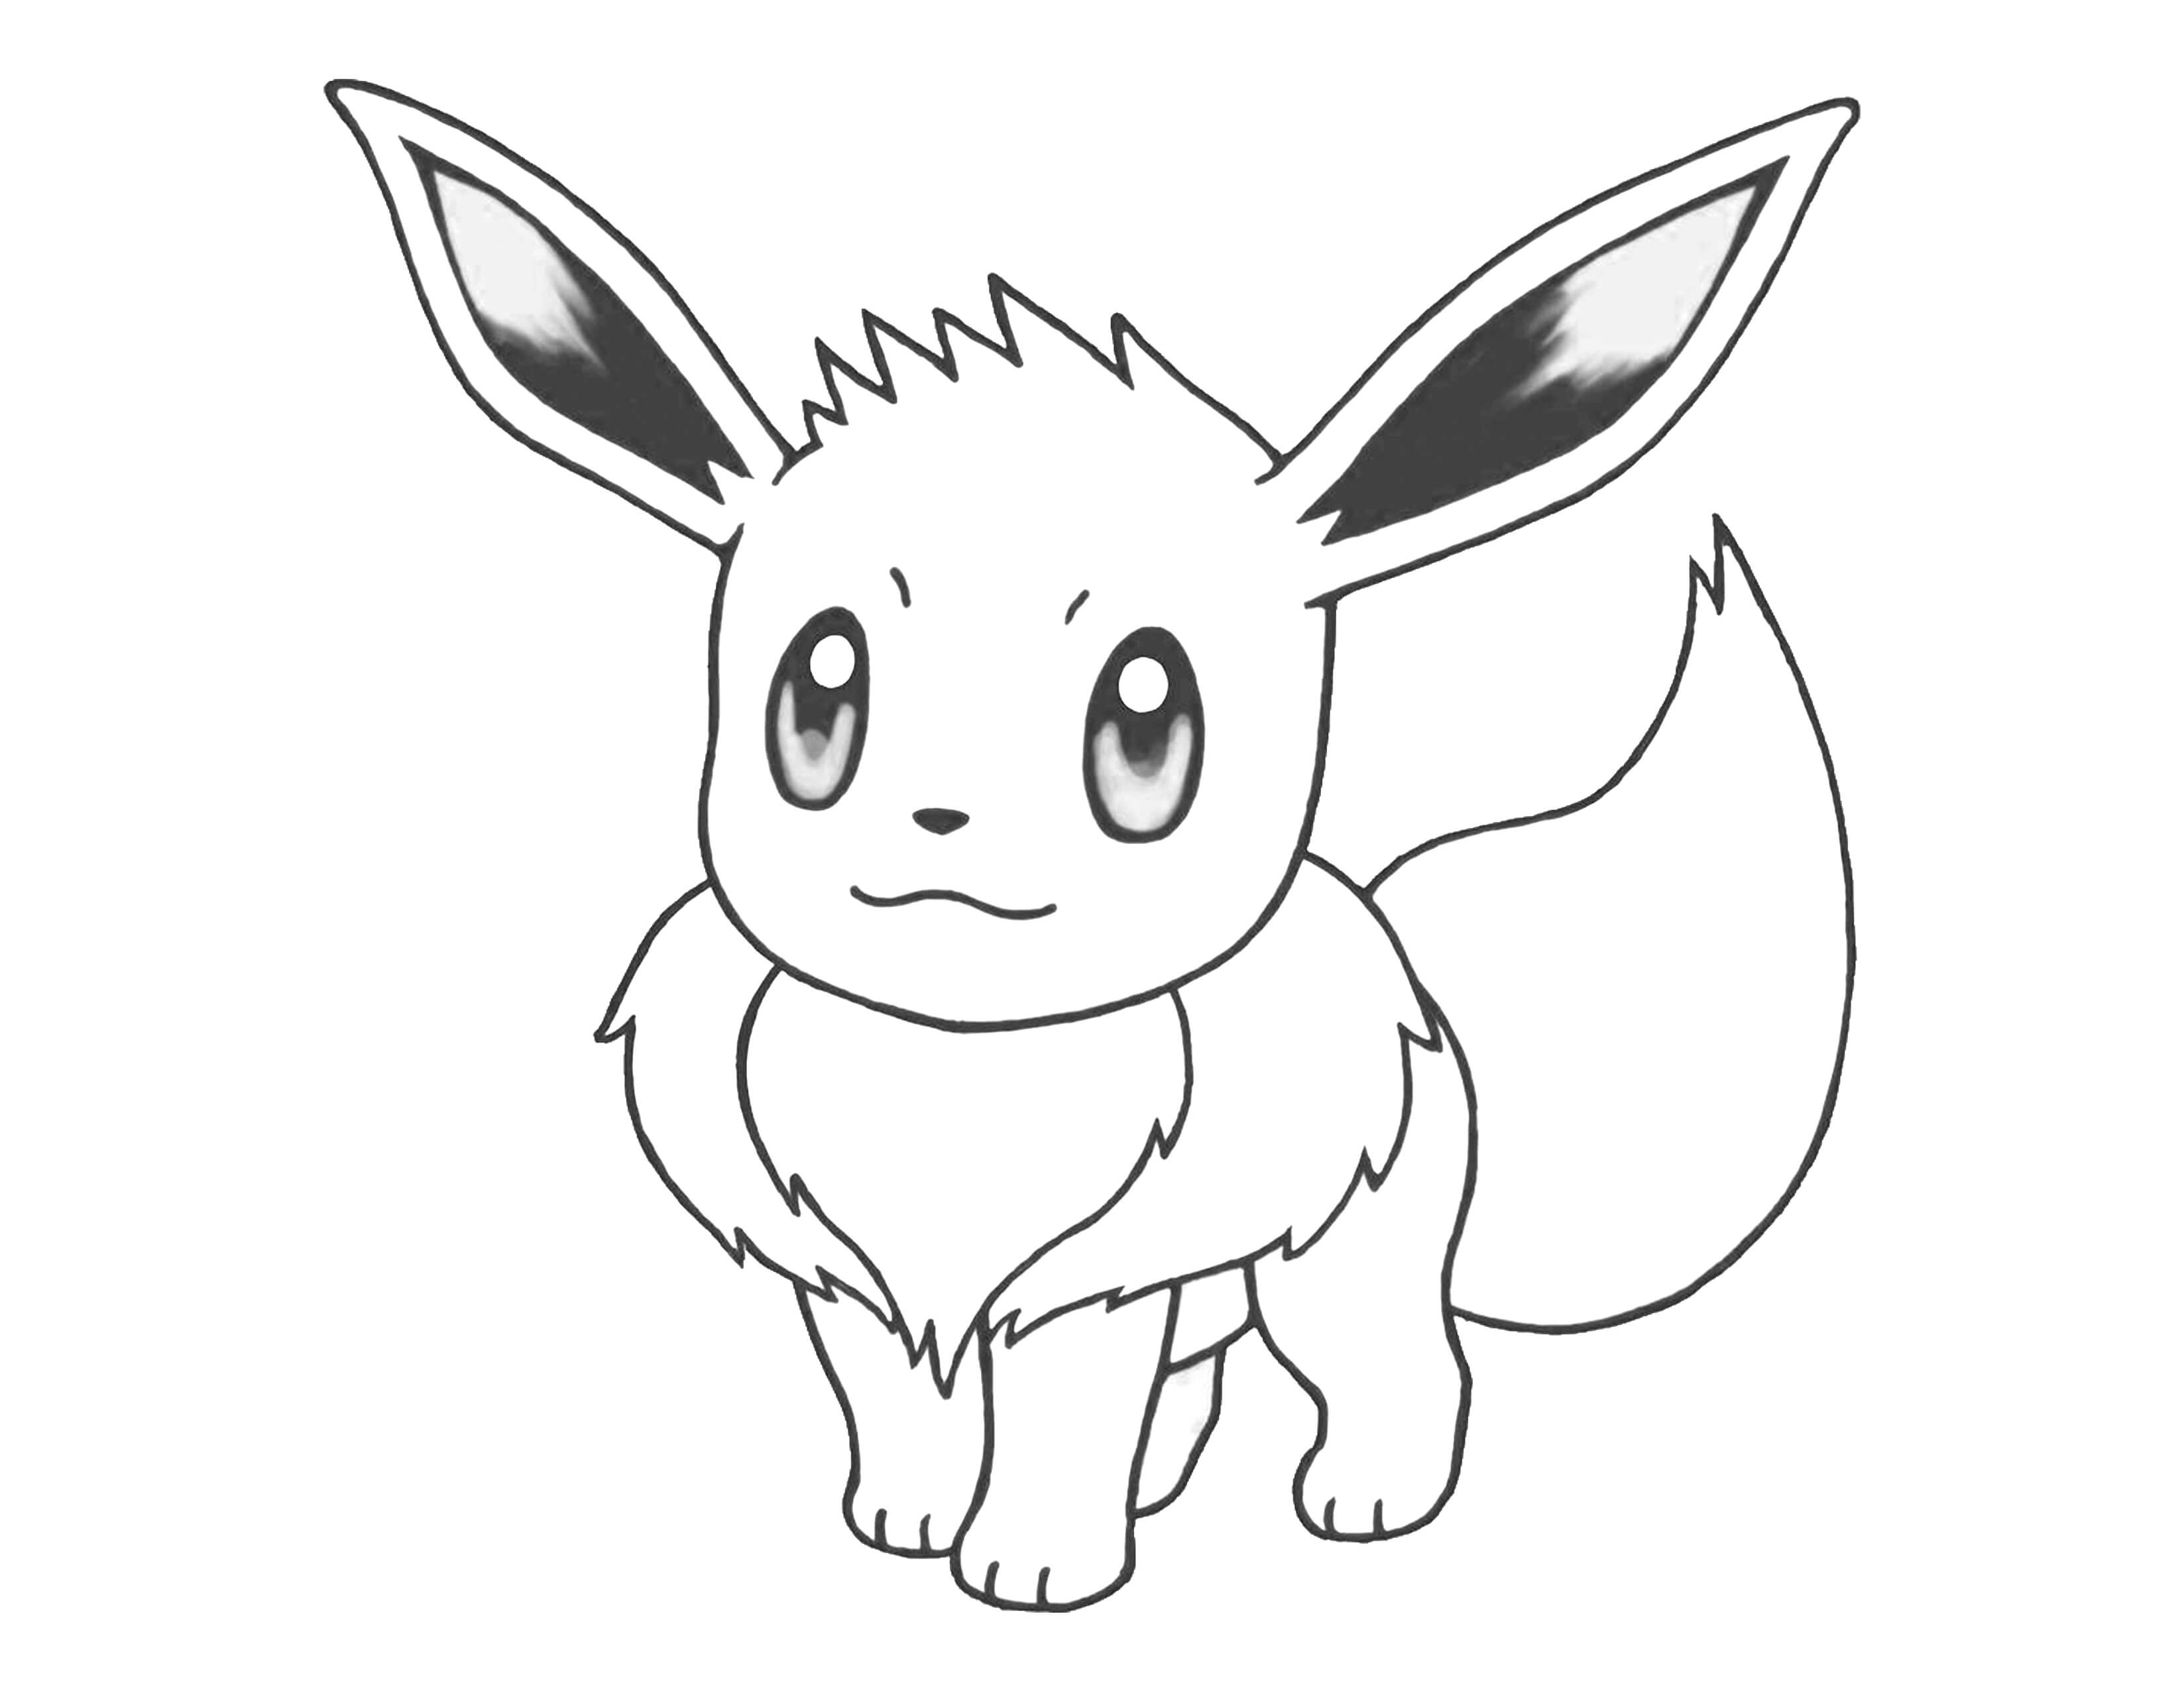 eevee coloring sheets pokemon coloring page eevee coloring pics coloring home sheets eevee coloring